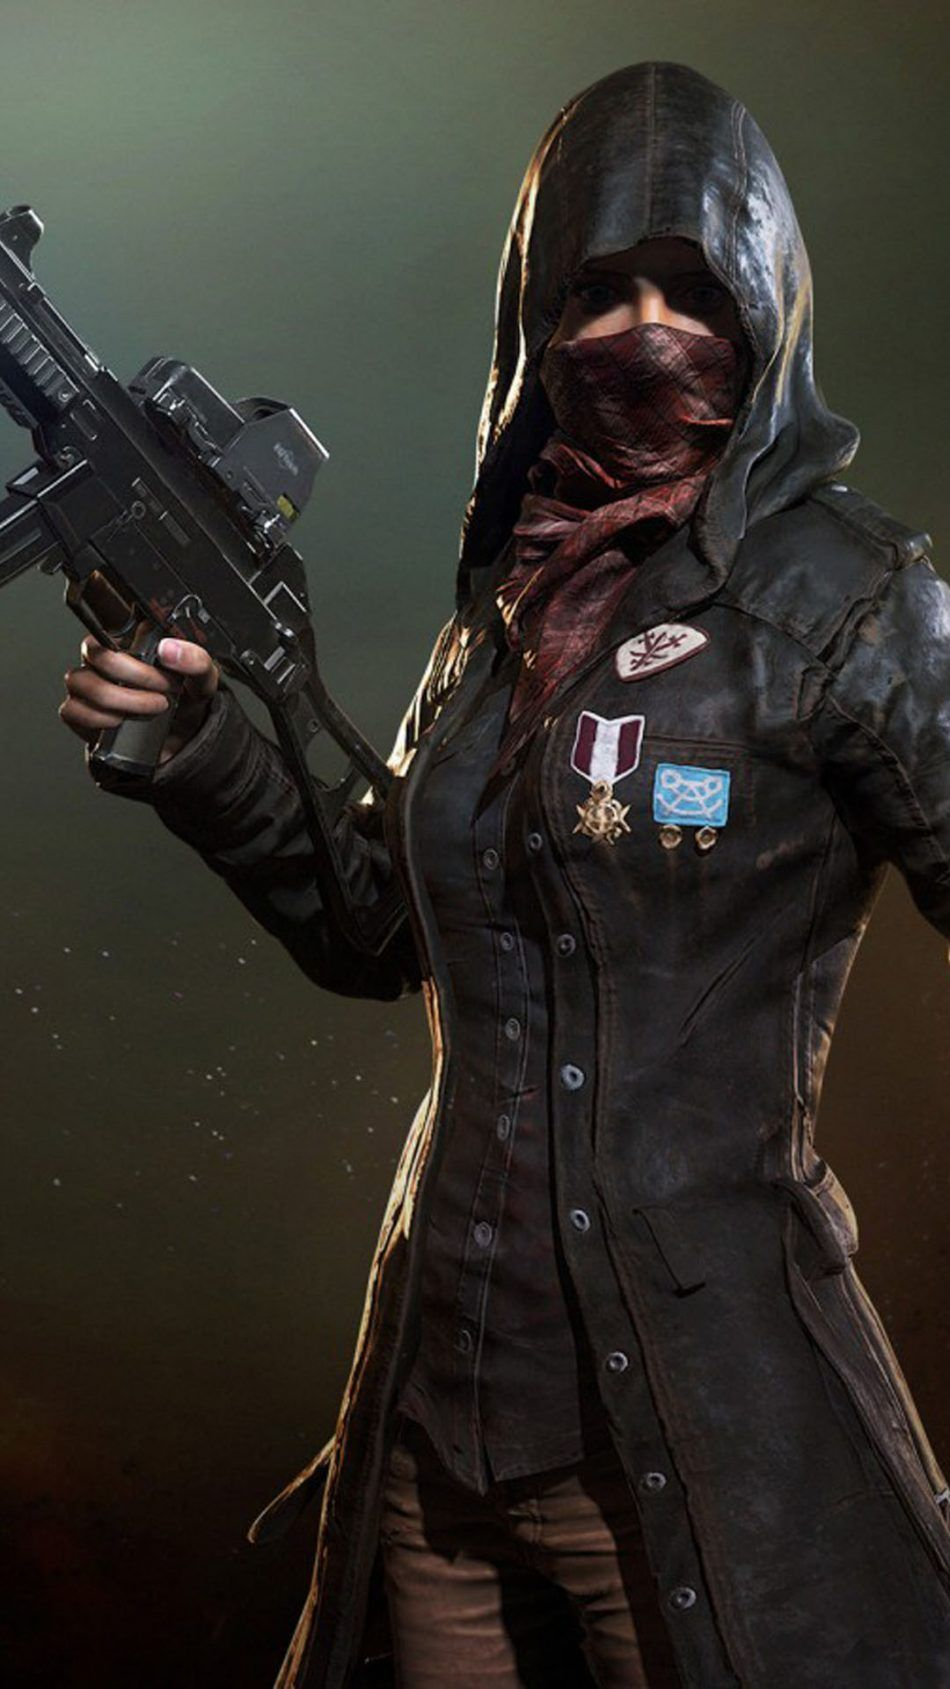 Pubg Female Player In Mask Pubg Pinterest Mobile Wallpaper